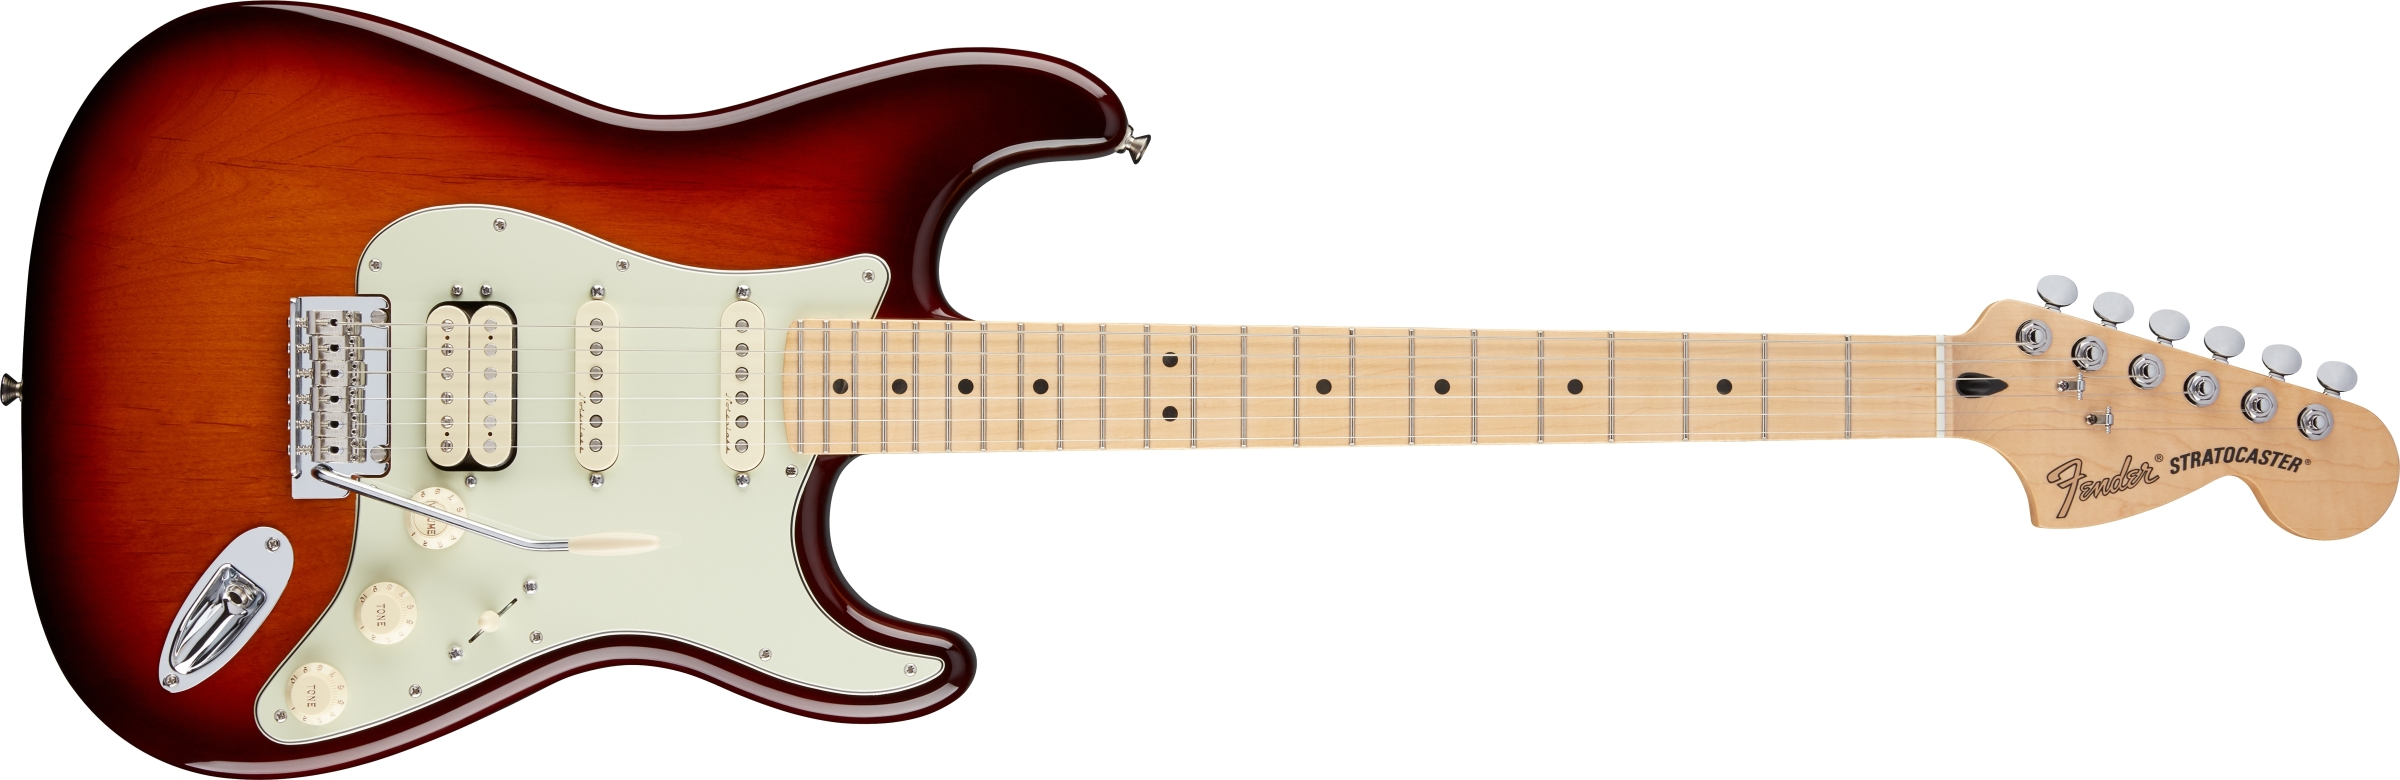 Lovely How To Wire Ssr Thick Excalibur Remote Start Installation Flat 5 Way Rotary Switch Wiring Diagram 3 Coil Pickup Youthful How To Wire Guitar Pickups PinkGibson 3 Way Switch Fender Deluxe Stratocaster® HSS, Maple Fingerboard, Tobacco Sunburst